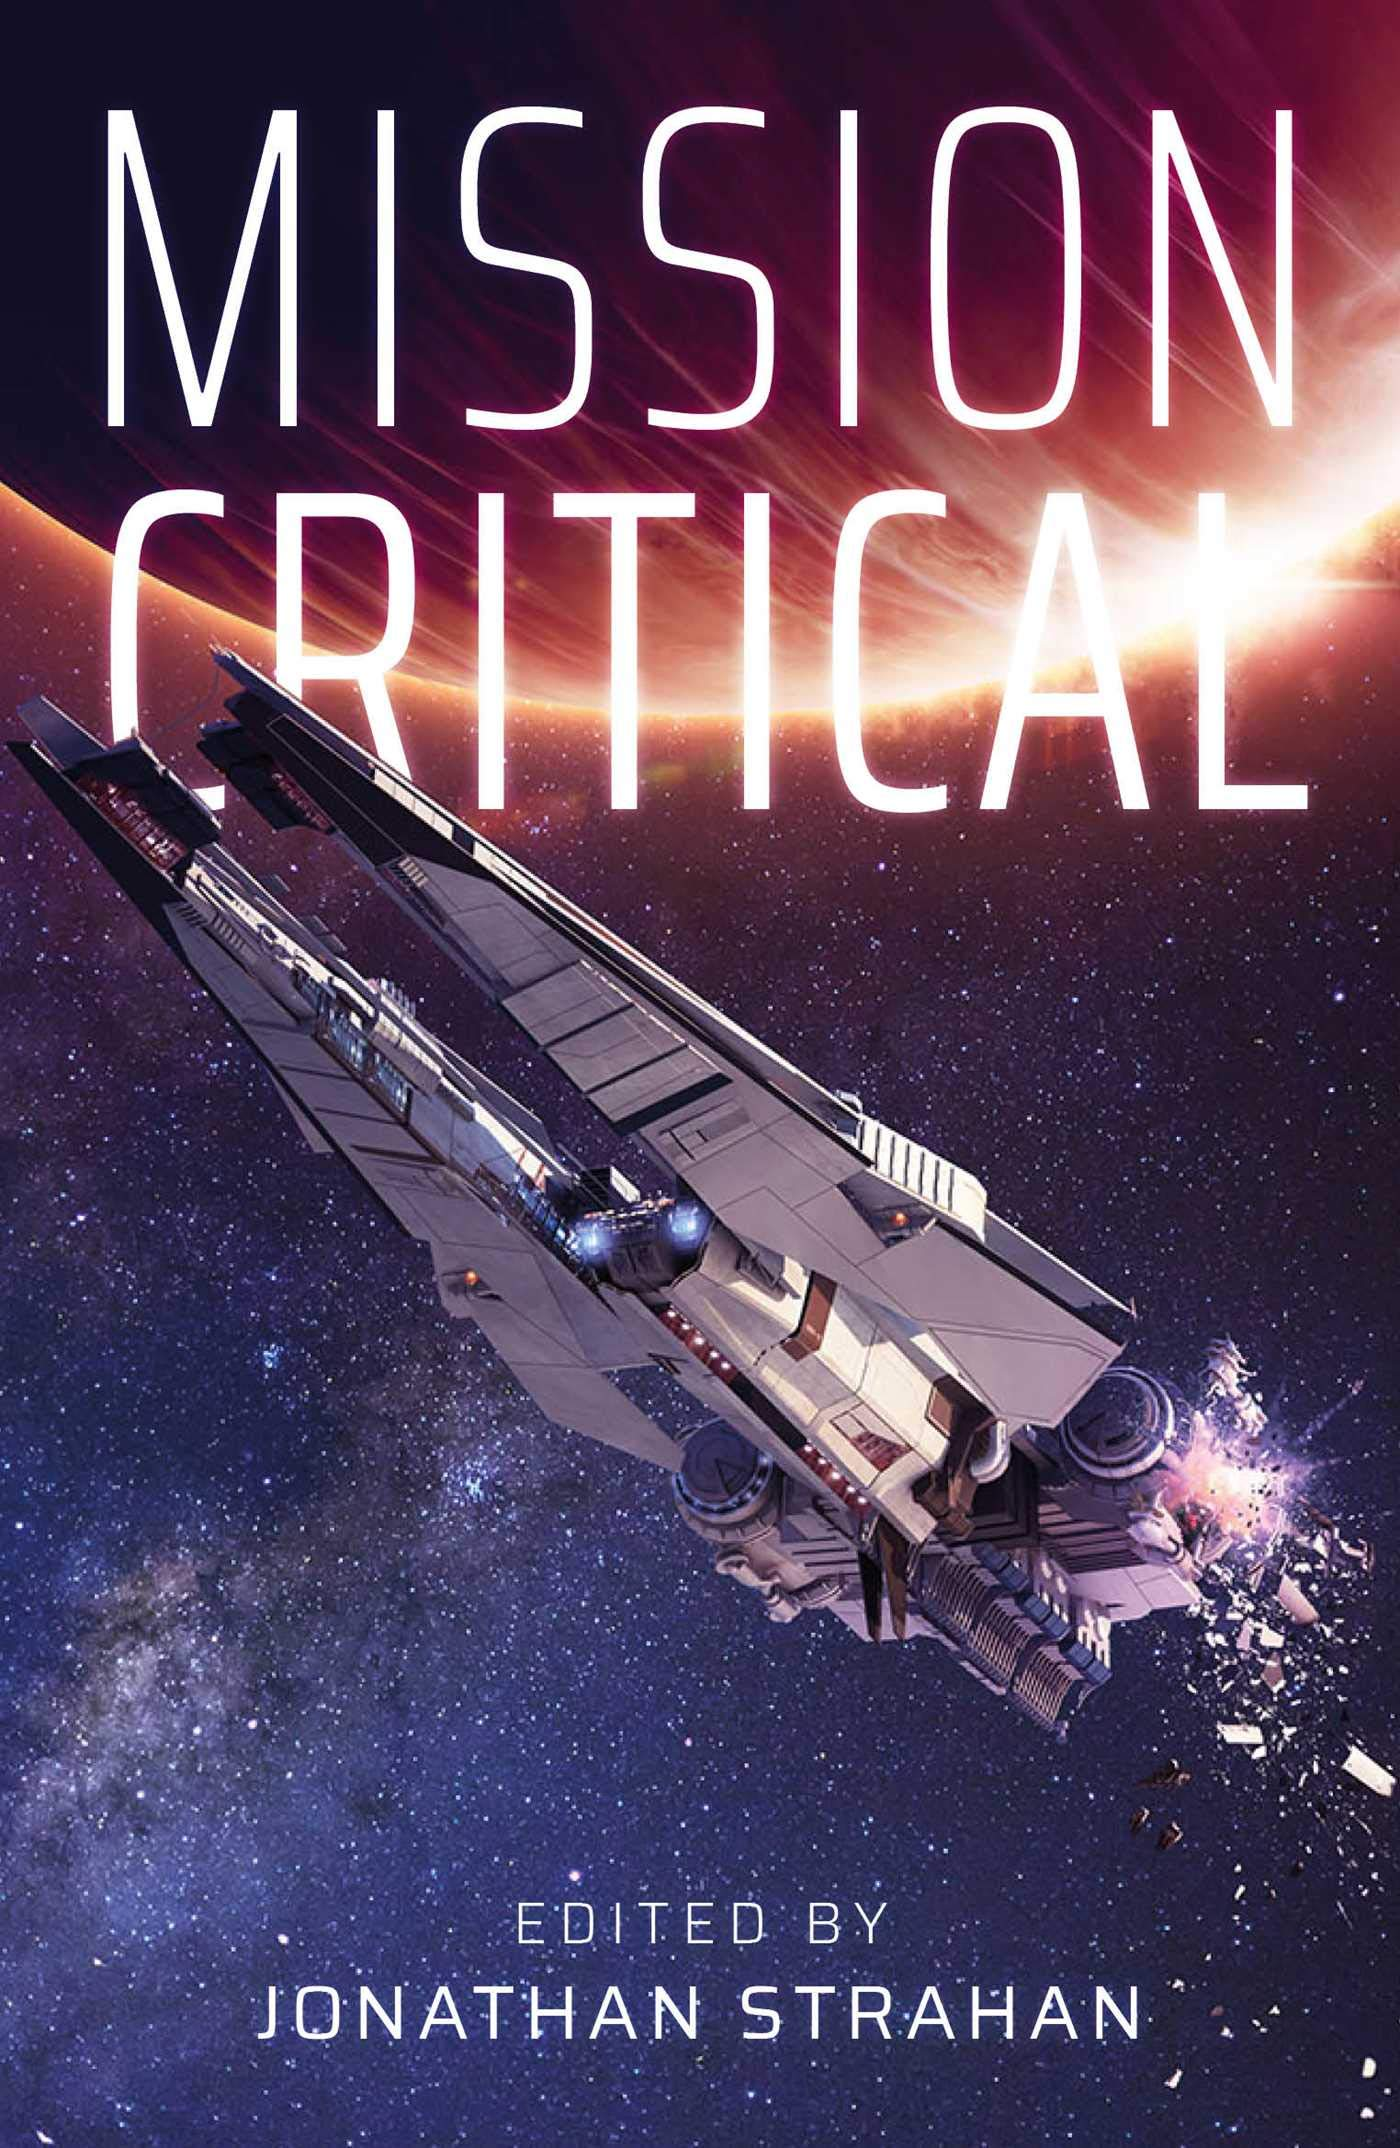 Happy Release Day to Mission Critical, edited by Jonathan Strahan